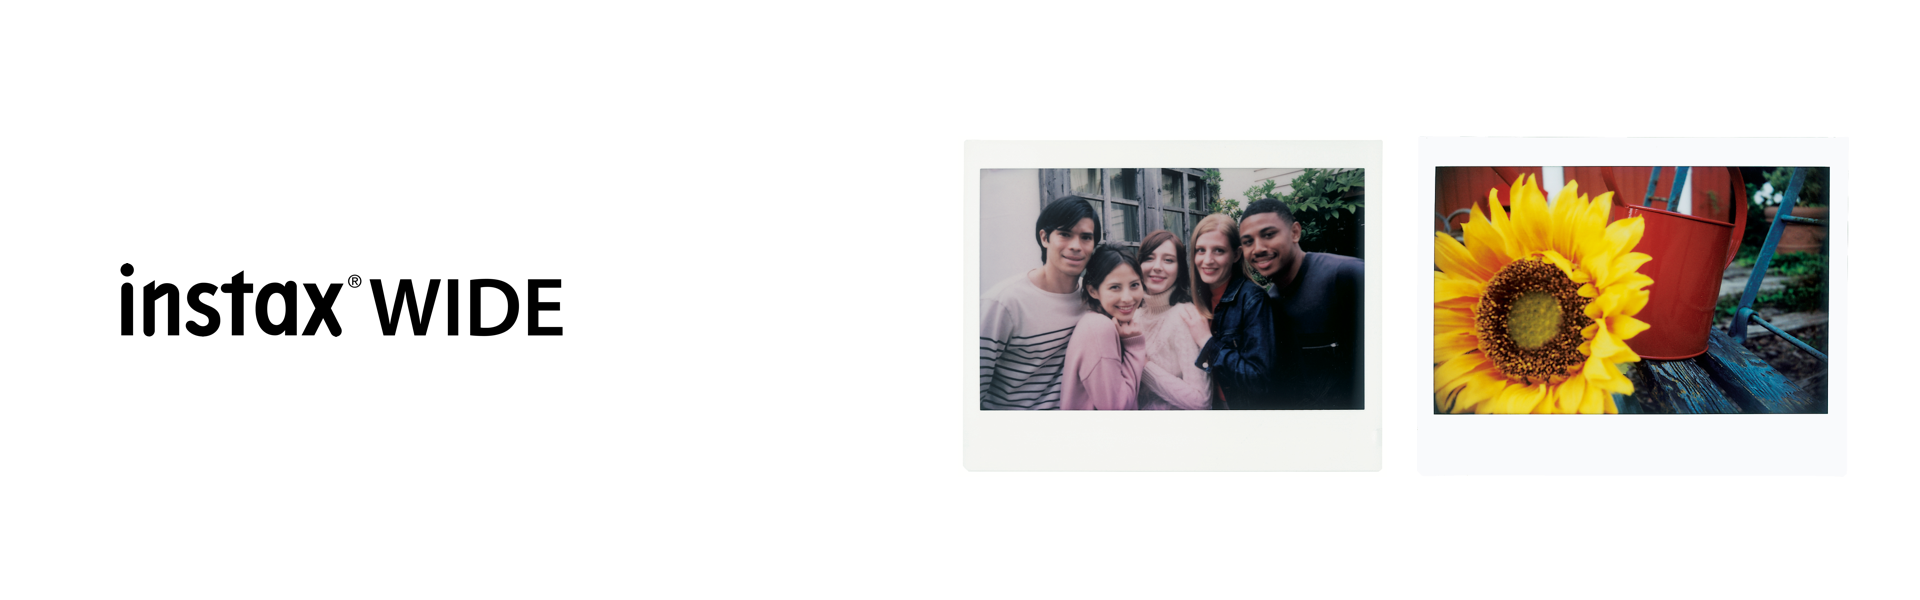 INSTAX wide title and images of people or scenic taken with INSTAX wide film